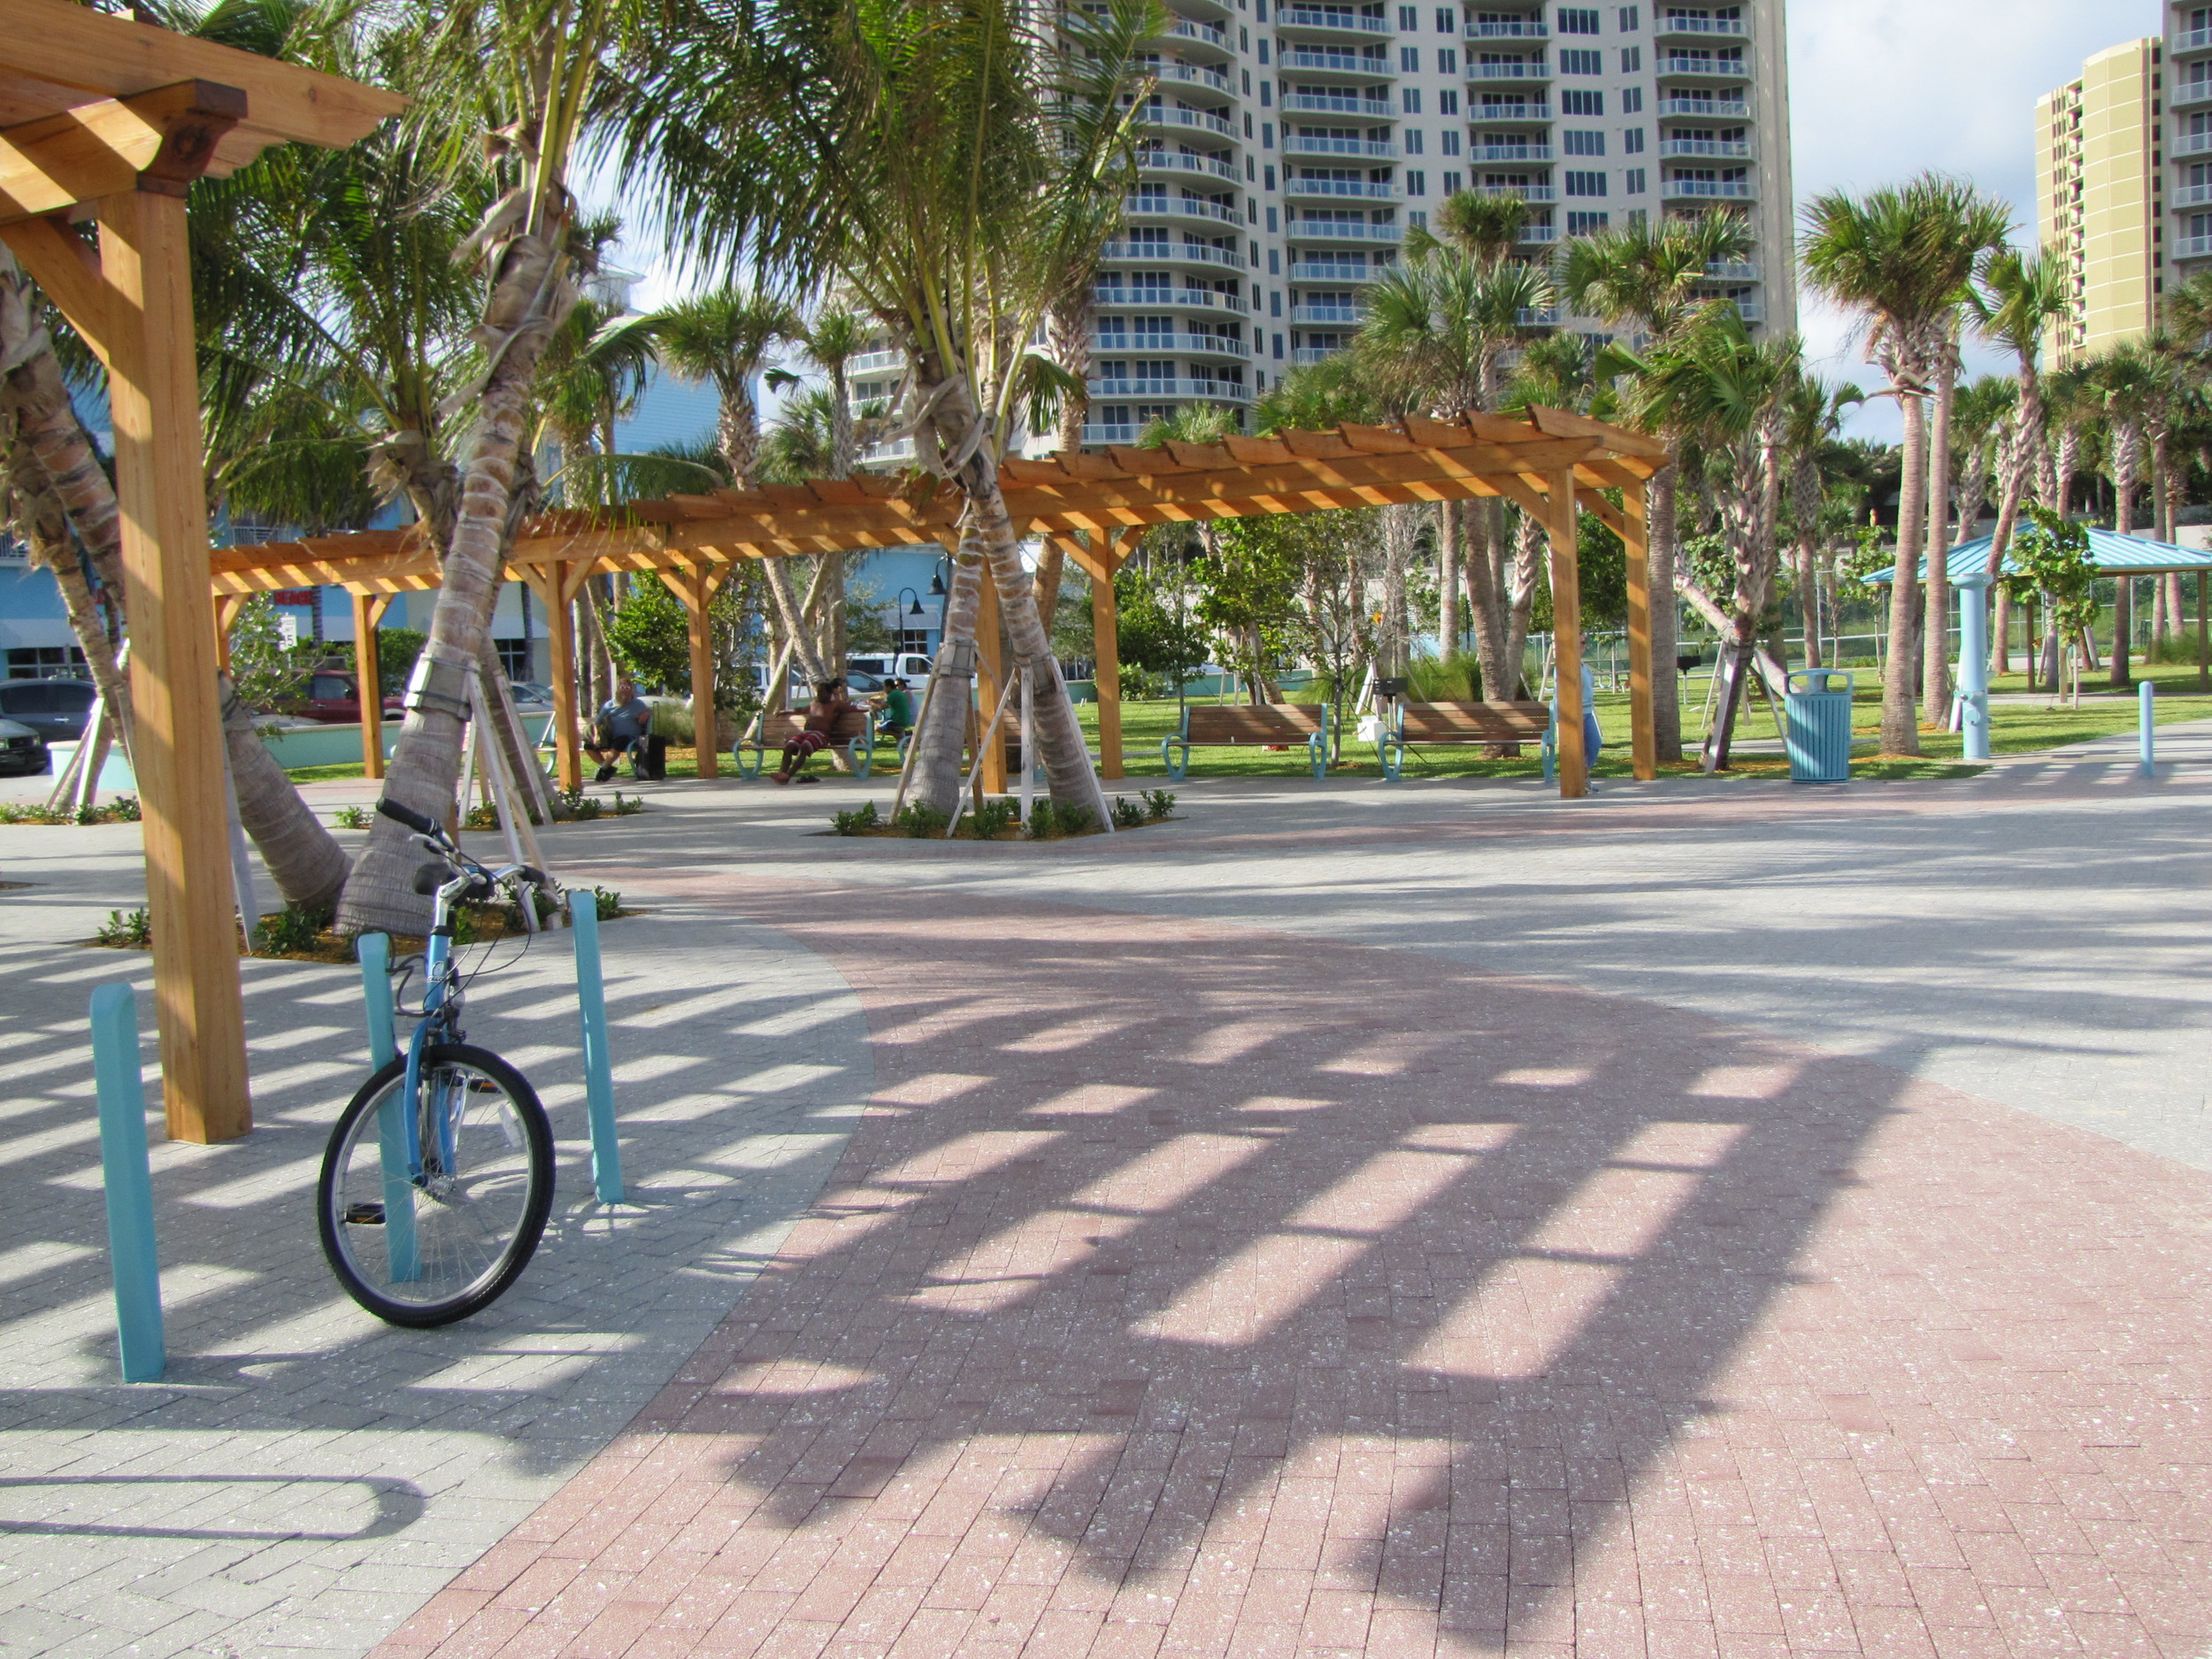 City of Riviera Beach Municipal Beach Park Ocean Mall Trellis and Bike Colored Concrete Pavers.jpg